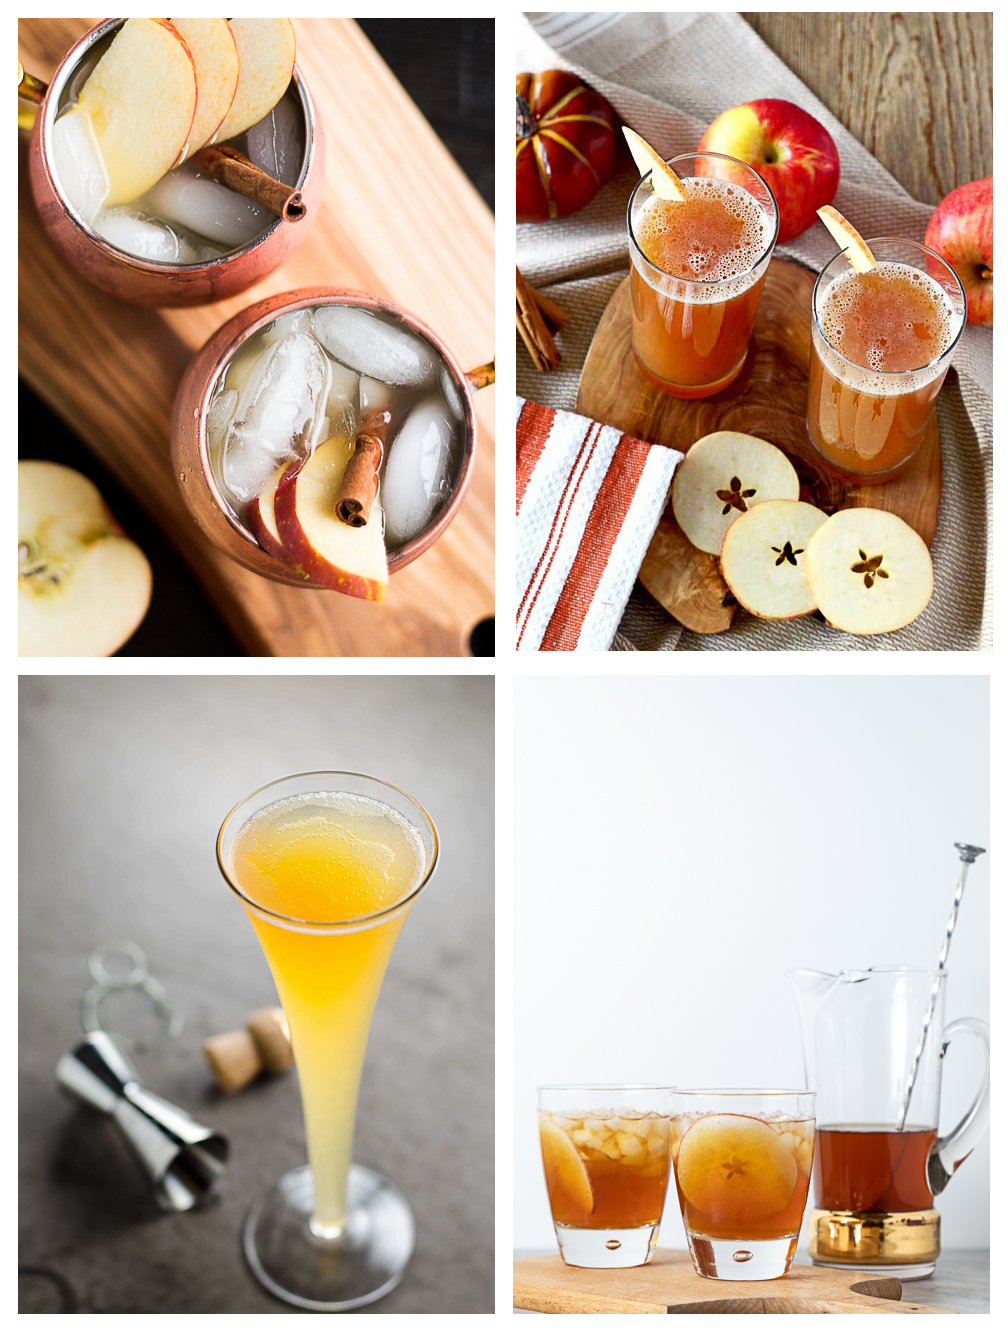 Collage showing 4 apple cocktails that are fizzy!